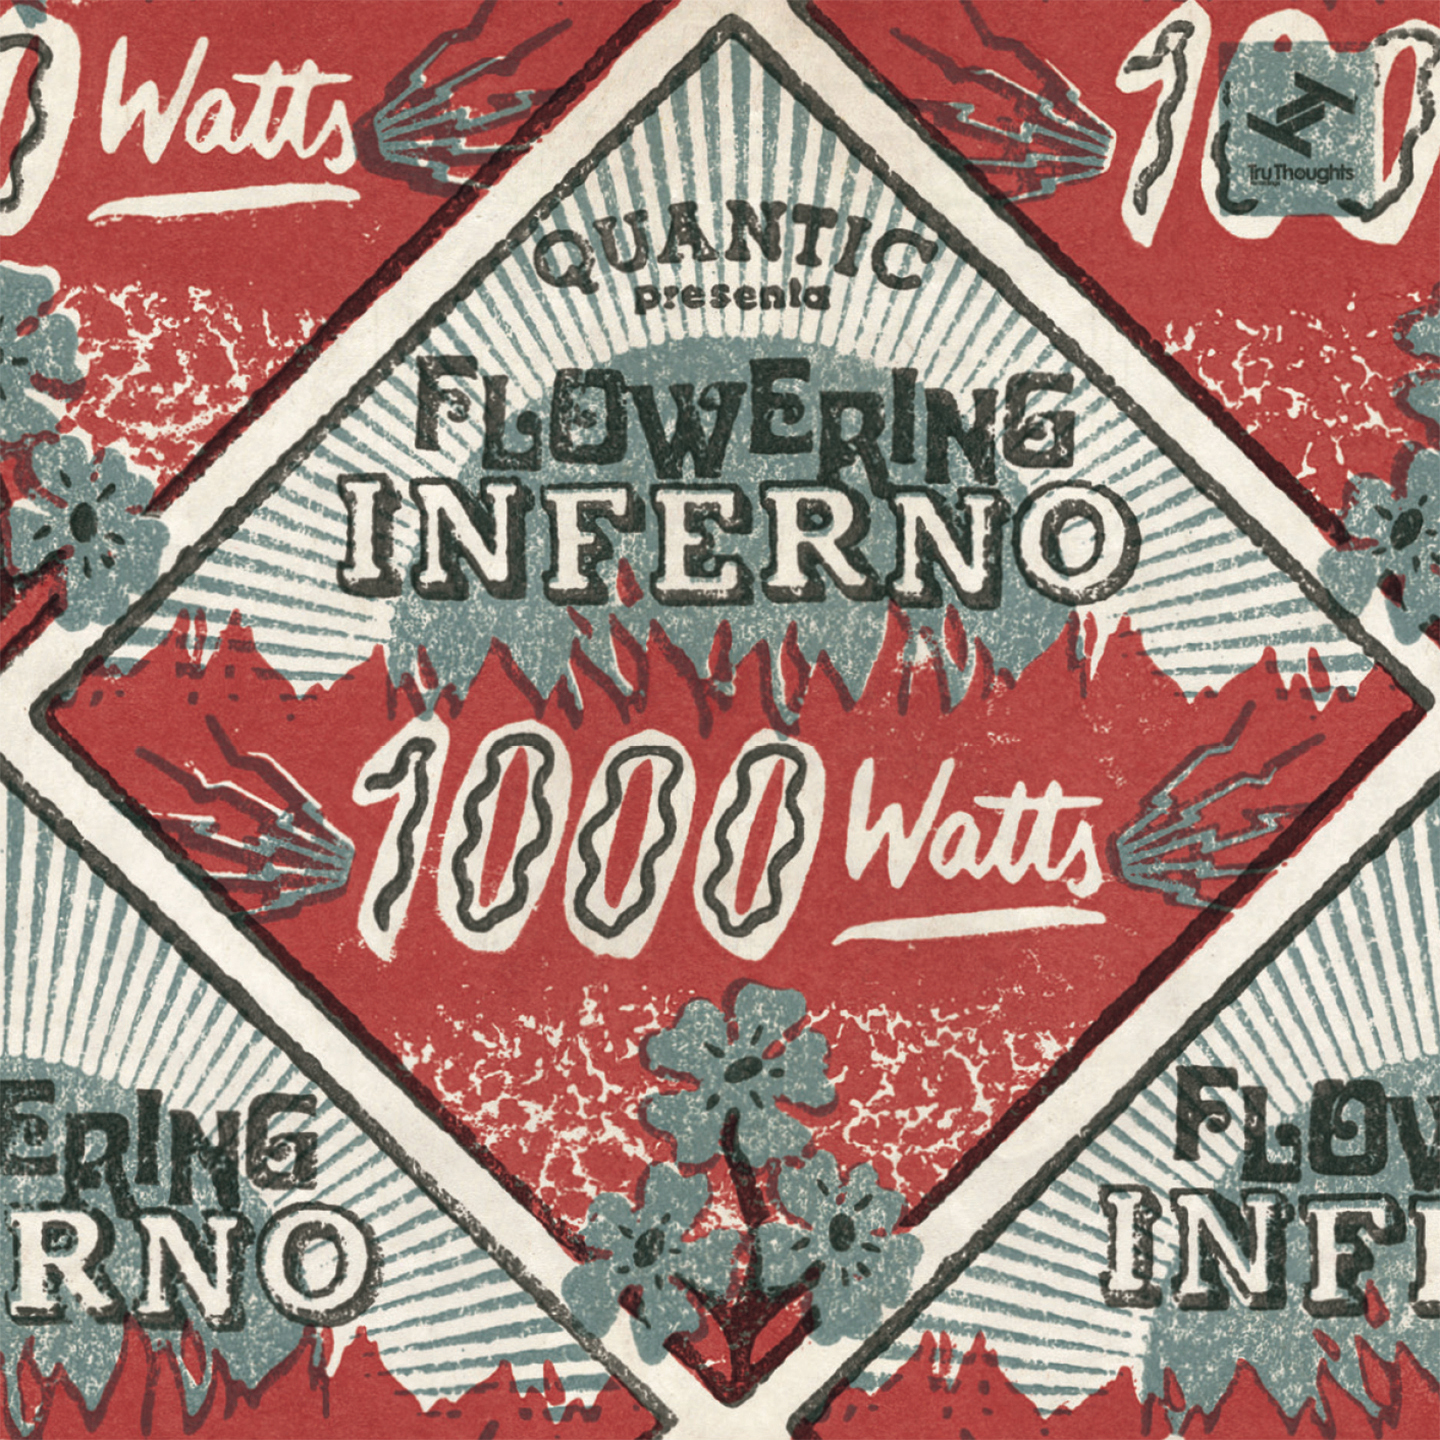 Quantic-Presents-Flowering-Inferno---1000-Watts-Cover